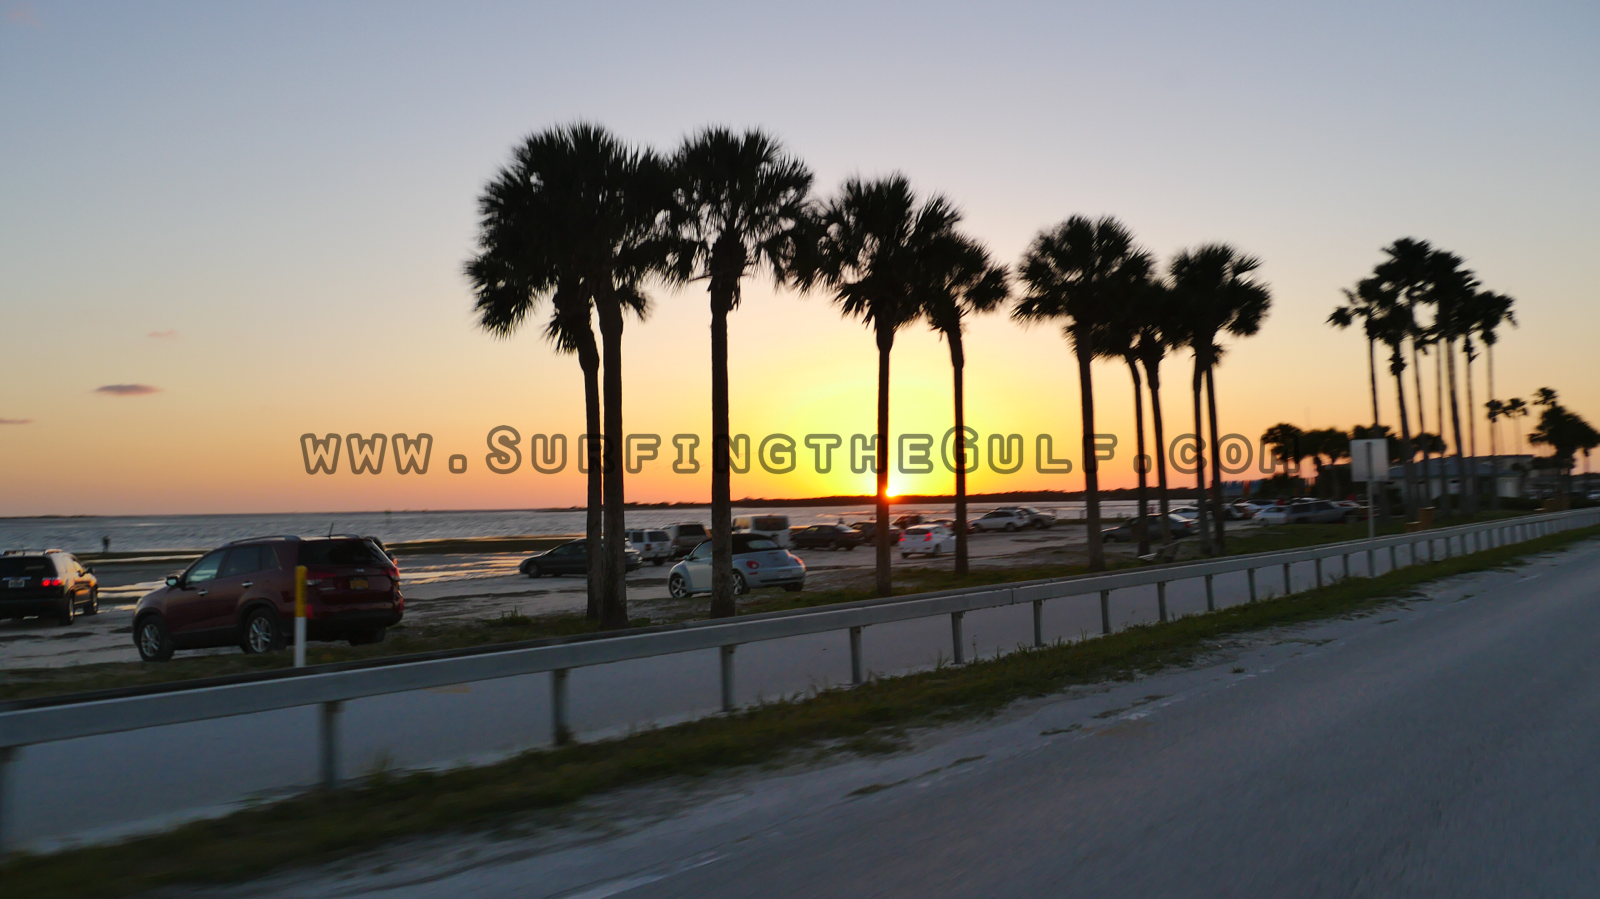 Surfingthegulf the best surfing website on the gulf coast dunedin causewaydunedin causeway closes at 11pmdunedin causeway closing timedunedin causeway hourshoneymoon island state parksunset nvjuhfo Image collections